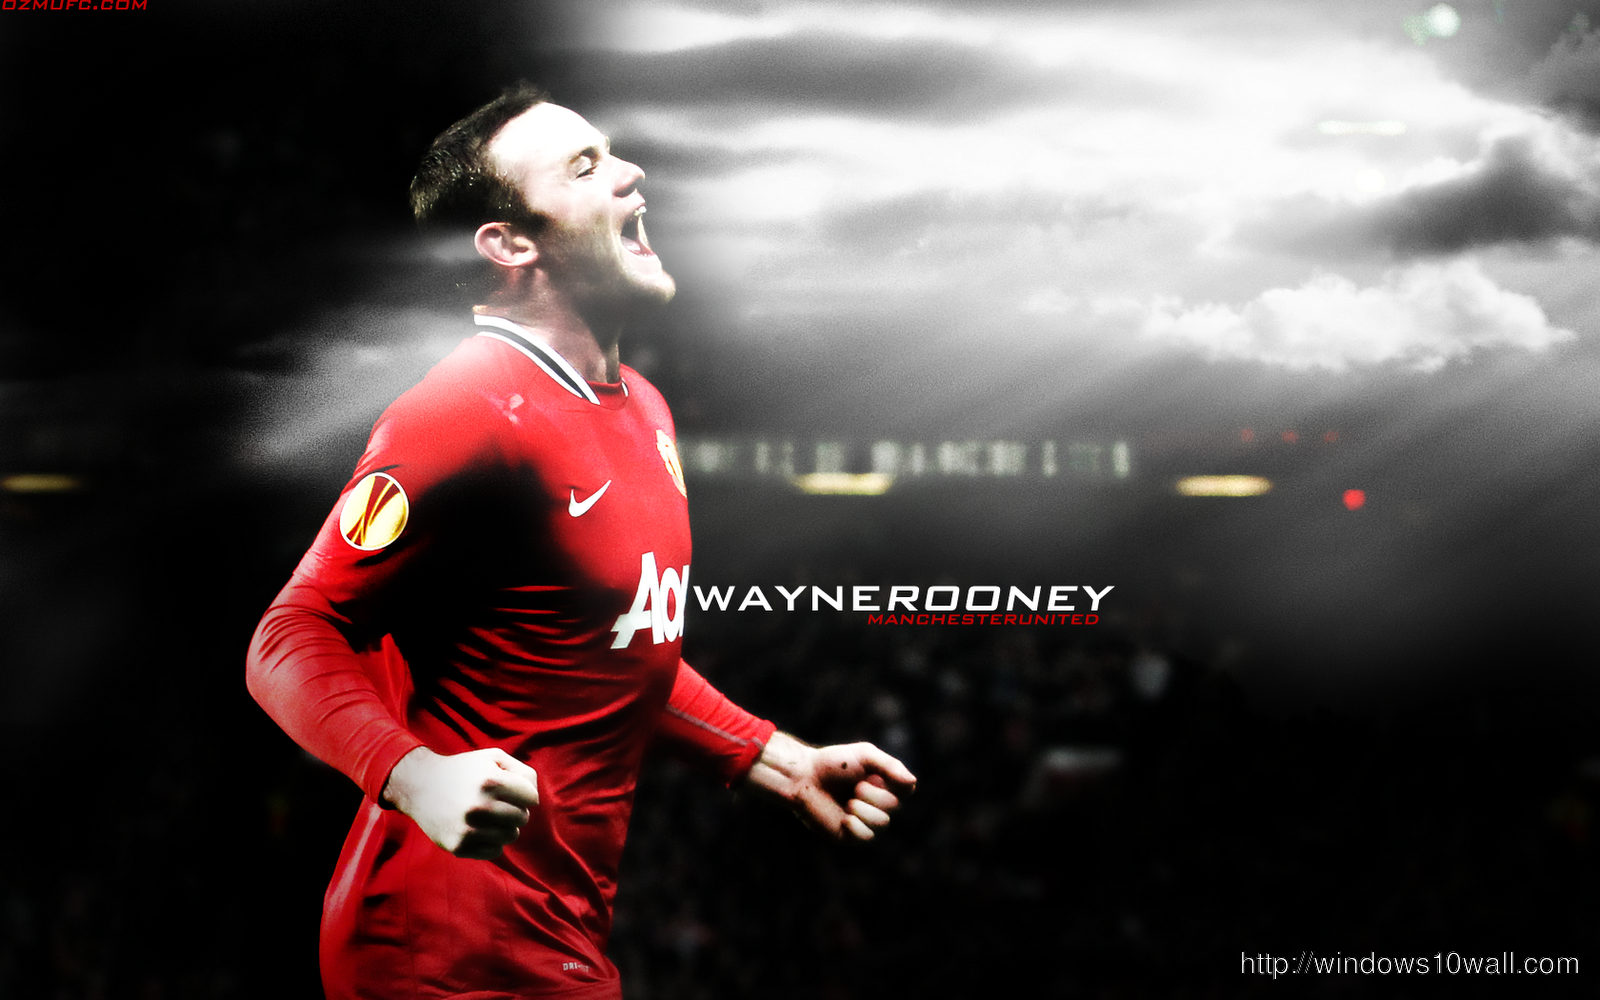 Best of Wayne Rooney World Cup Wallpaper